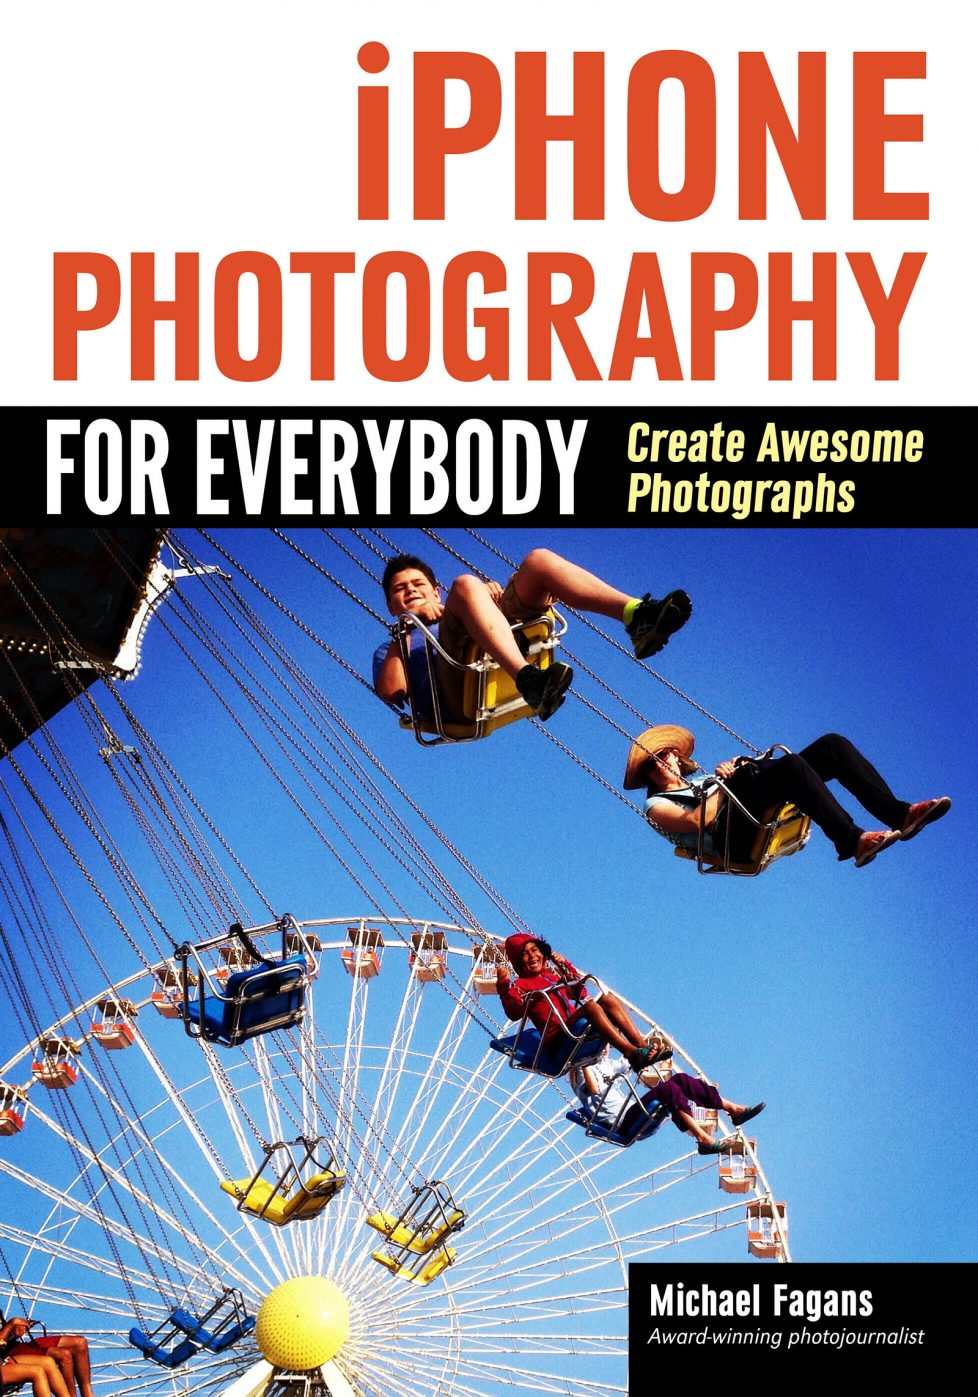 Iphone photography ebook pdf Android Keylogger - Best Keylogger App for Android Phone